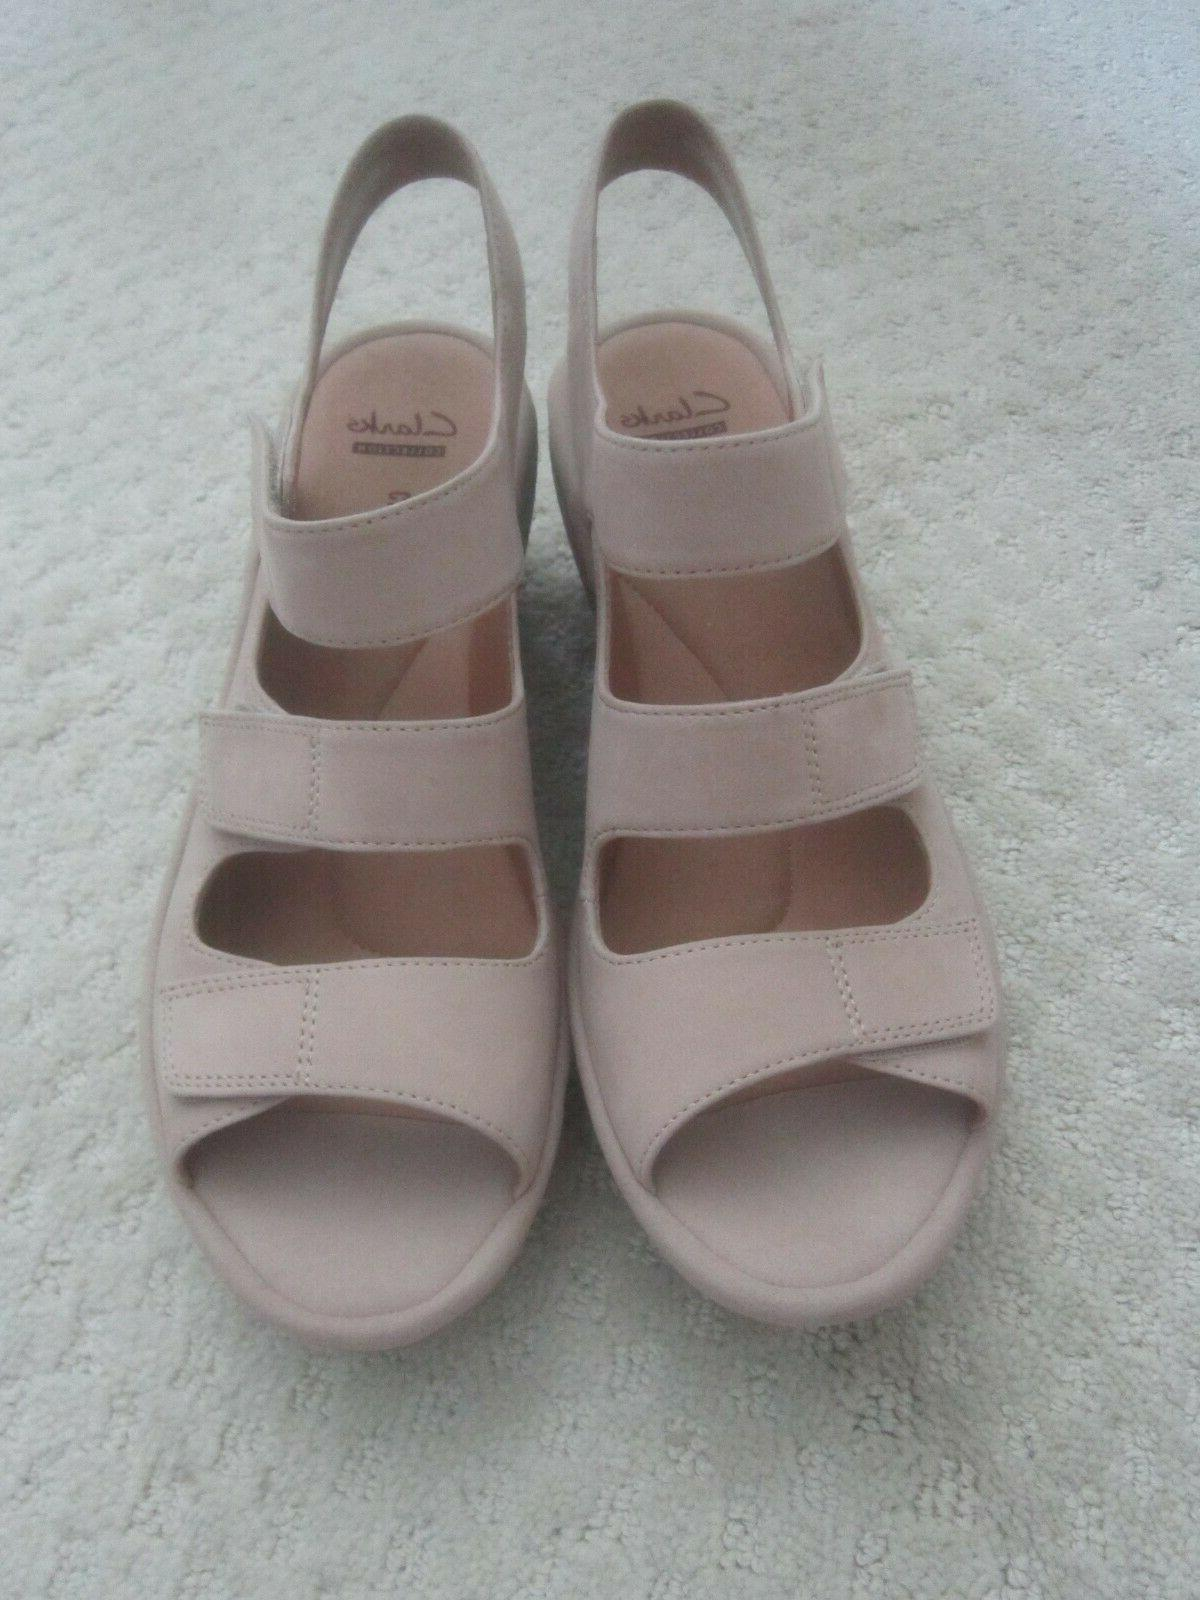 Clarks Reedly Leather Sandals Tan NWOB